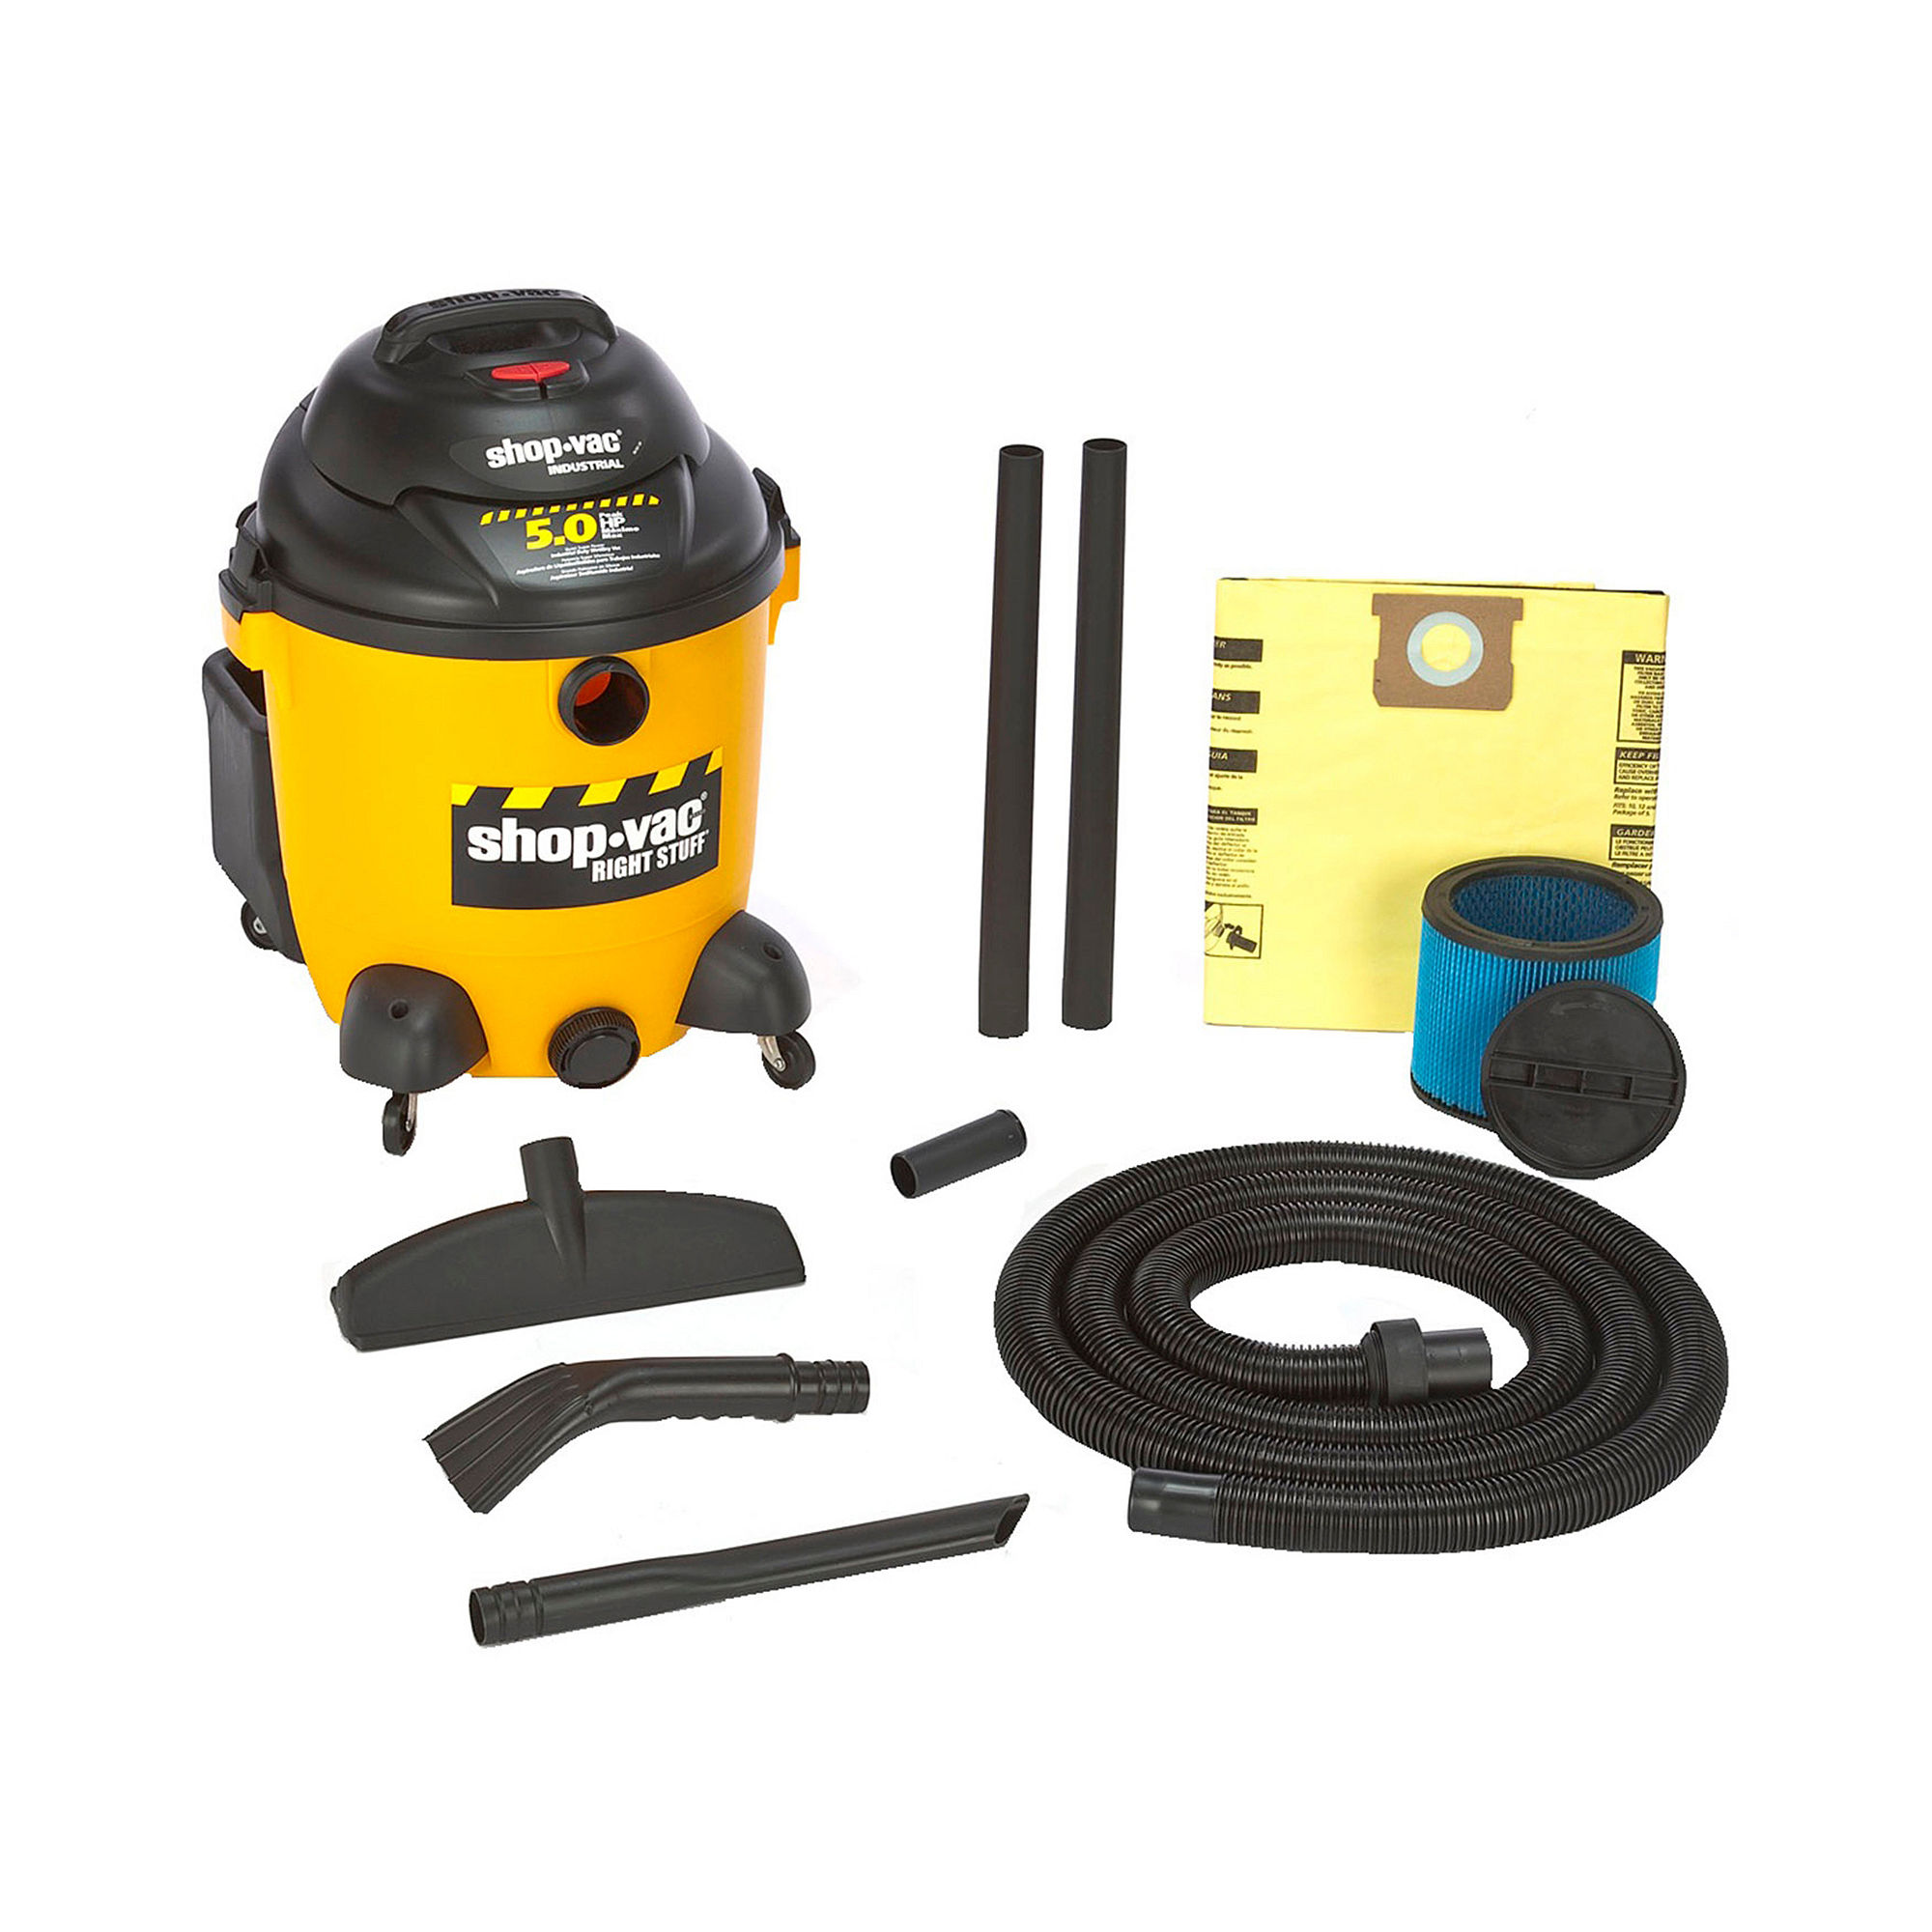 Shop-Vac Right Stuff 12-Gallon Wet/Dry Vacuum Cleaner